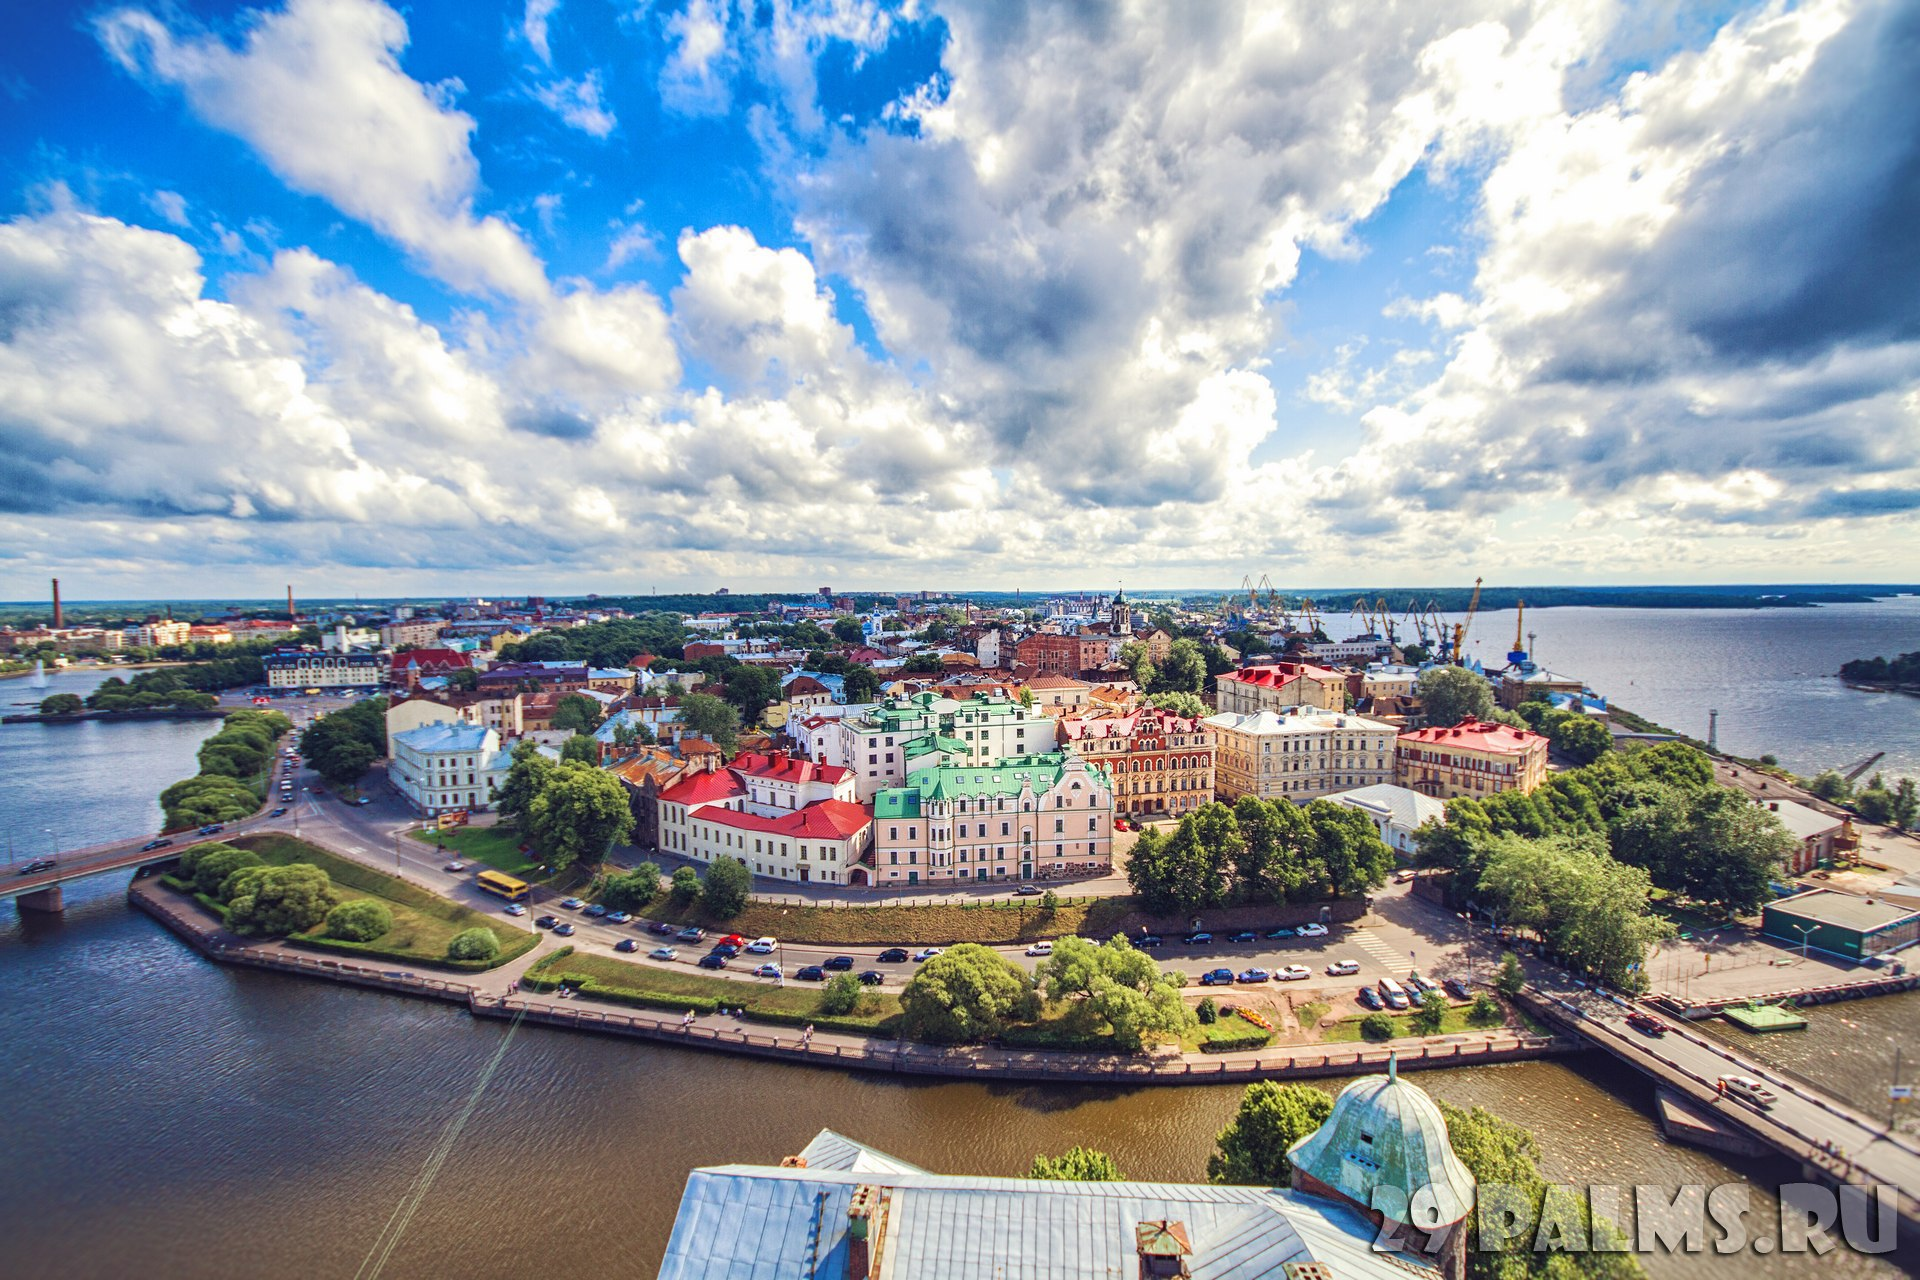 Россия. Панорама Выборга. Panoramic view of the central part of the city from the tower of St. Olaf Vyborg Castle, Leningrad region. Фото lira_joggi - Depositphotos